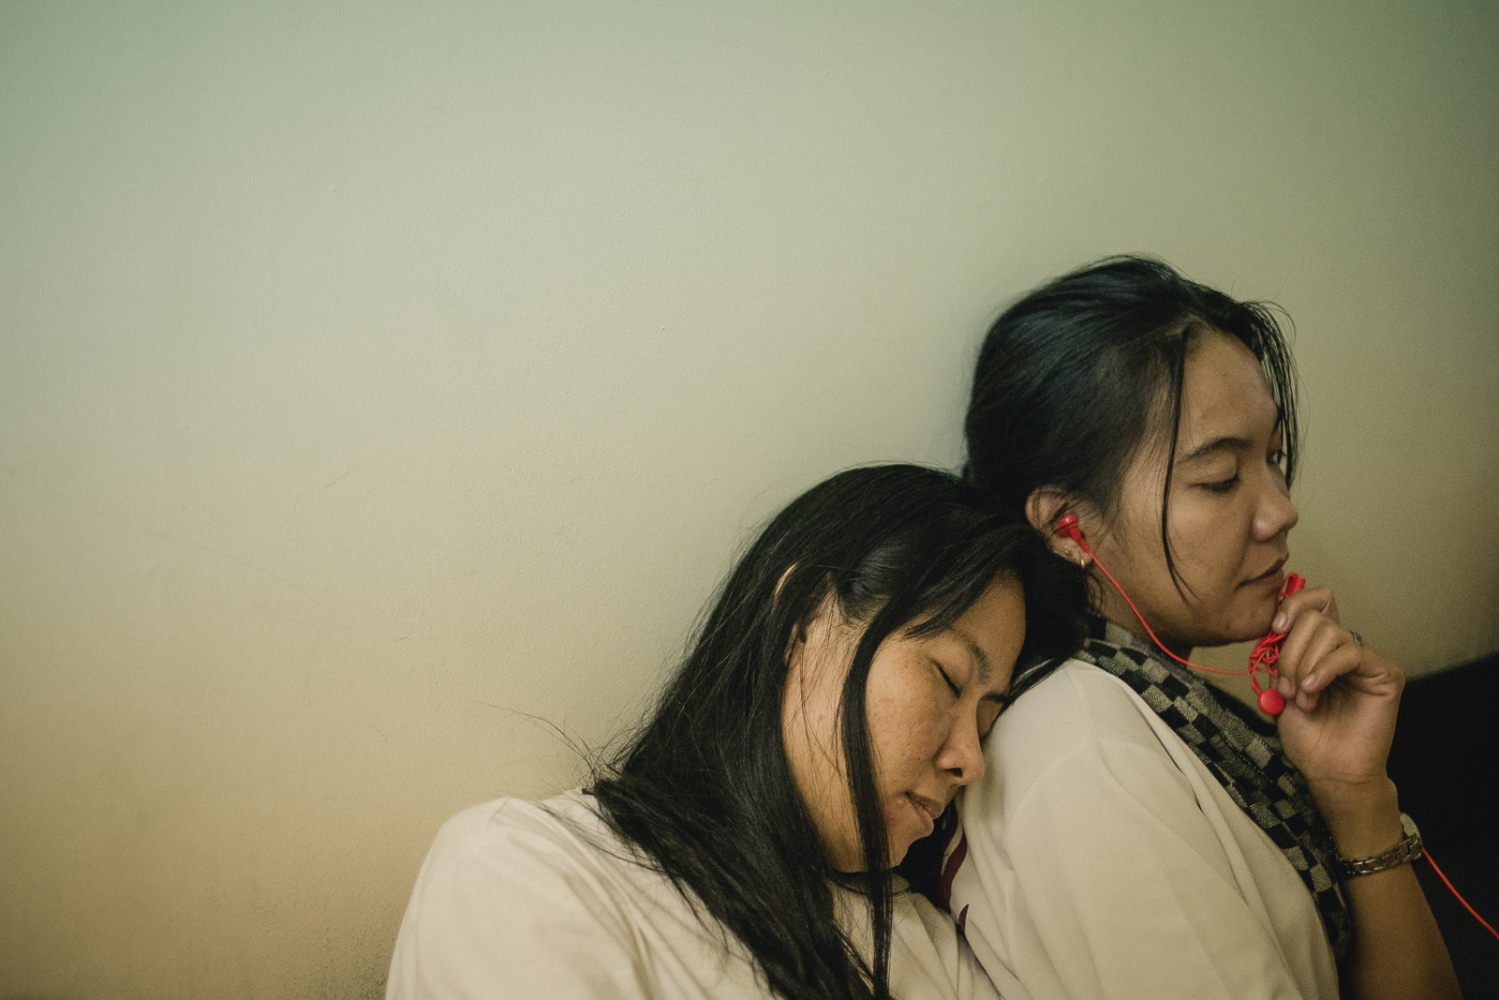 Foreign domestic workers wait for their cases to be assessed after seeking refuge with The Humanitarian Organisation for Migration Economics (HOME), an organisation that provides direct assistance to men and women migrants and victims of human trafficking and forced labour. Abuse of domestic workers ranges from physical and verbal abuse, sexual assault, punative action for perceived wrongs, violation of contracted rights and witheld pay. As Foreign domestic workers in Singapore are required by law to live with their employer, many who suffer abuses feel they have no choice but to run away and seek shelter with their embassy or NGOs such as HOME.